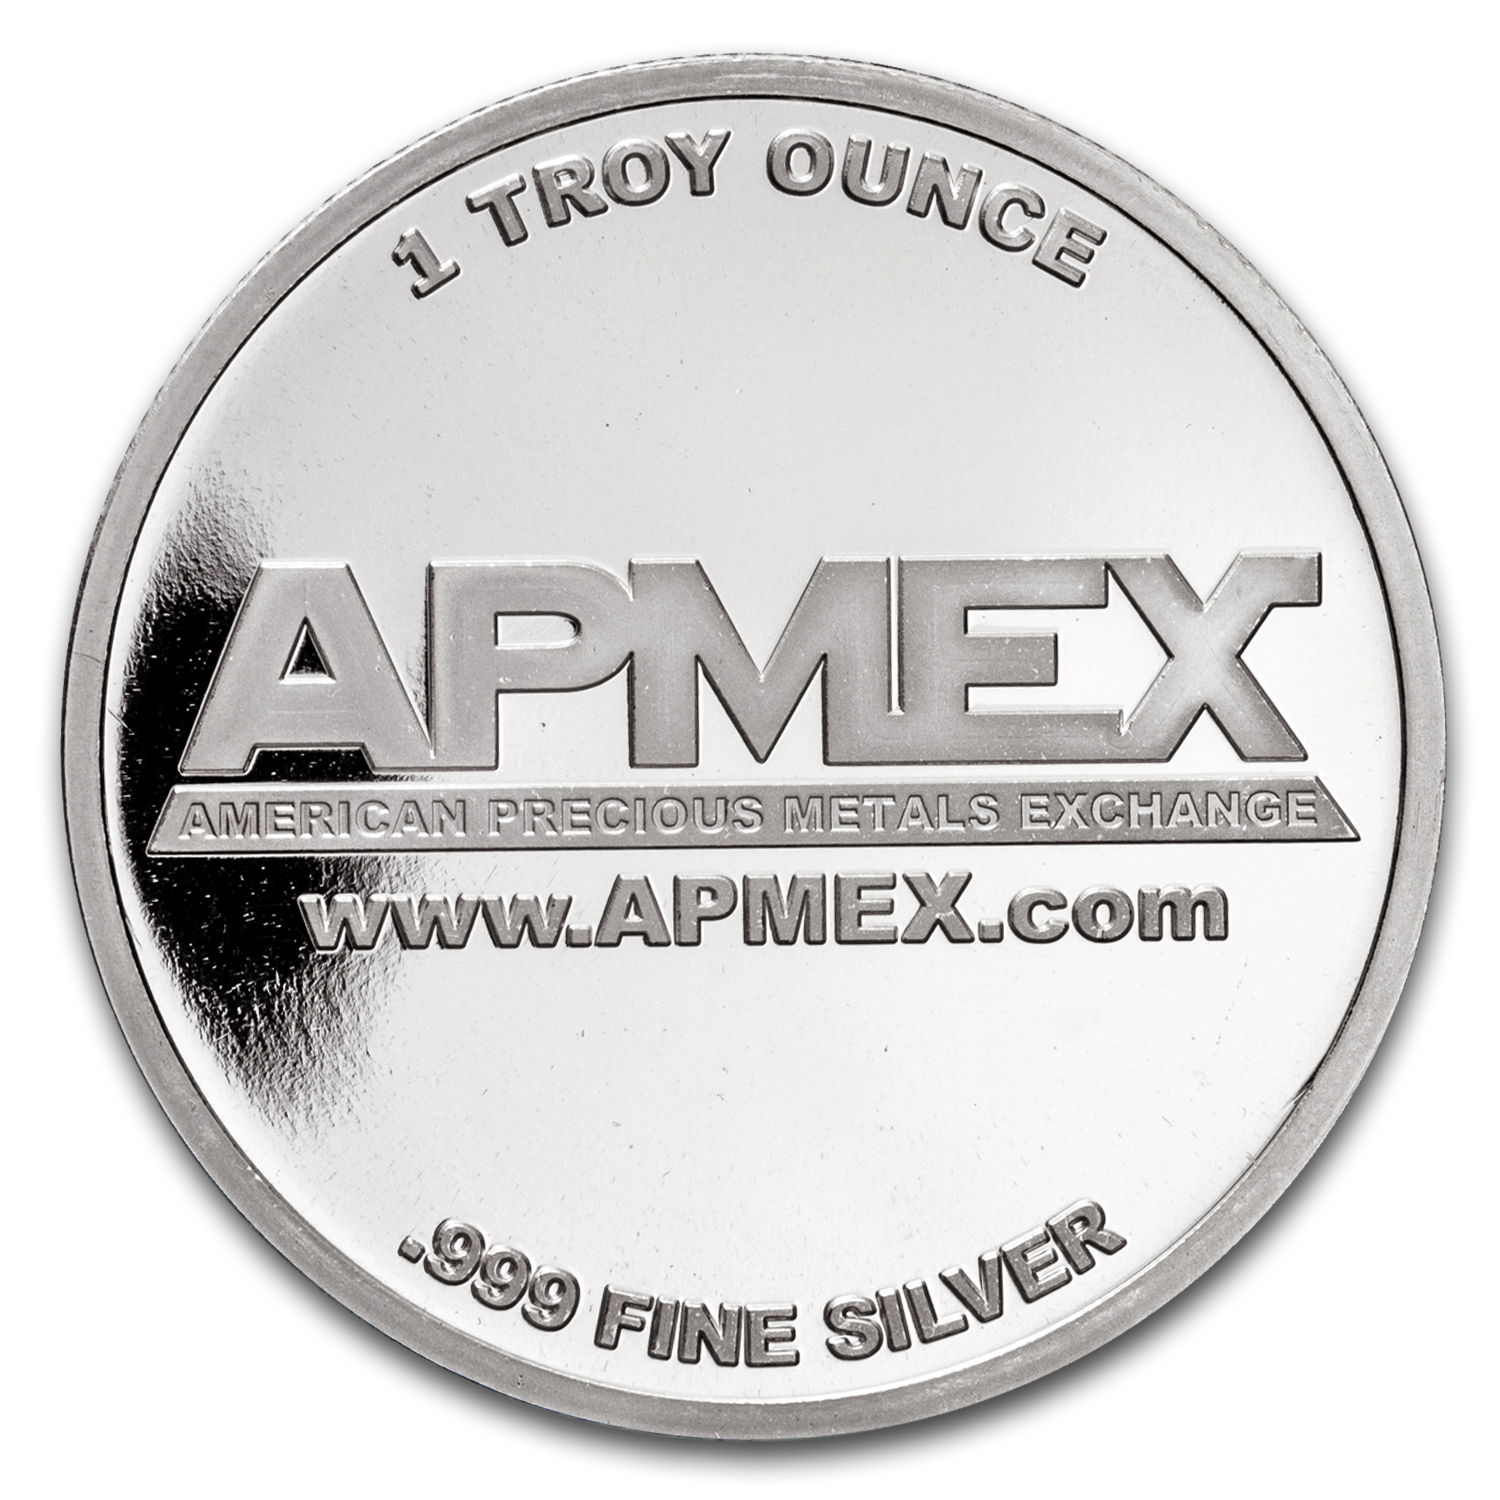 1 oz Silver Colorized Round - APMEX (Playful Penguin)